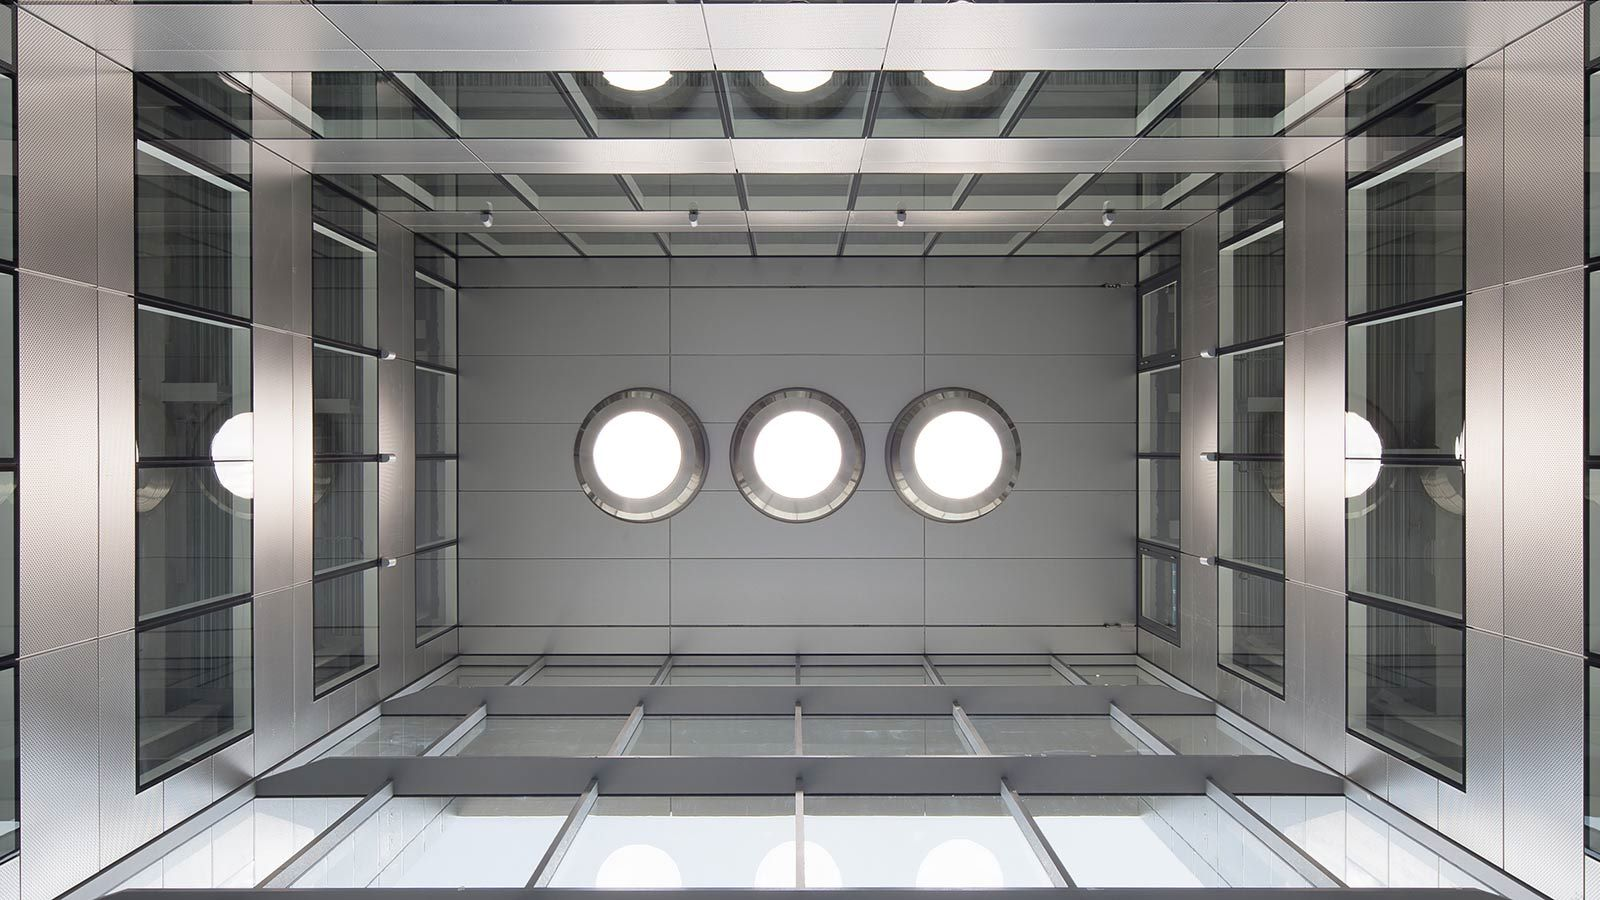 Building ceiling view - Mace Group